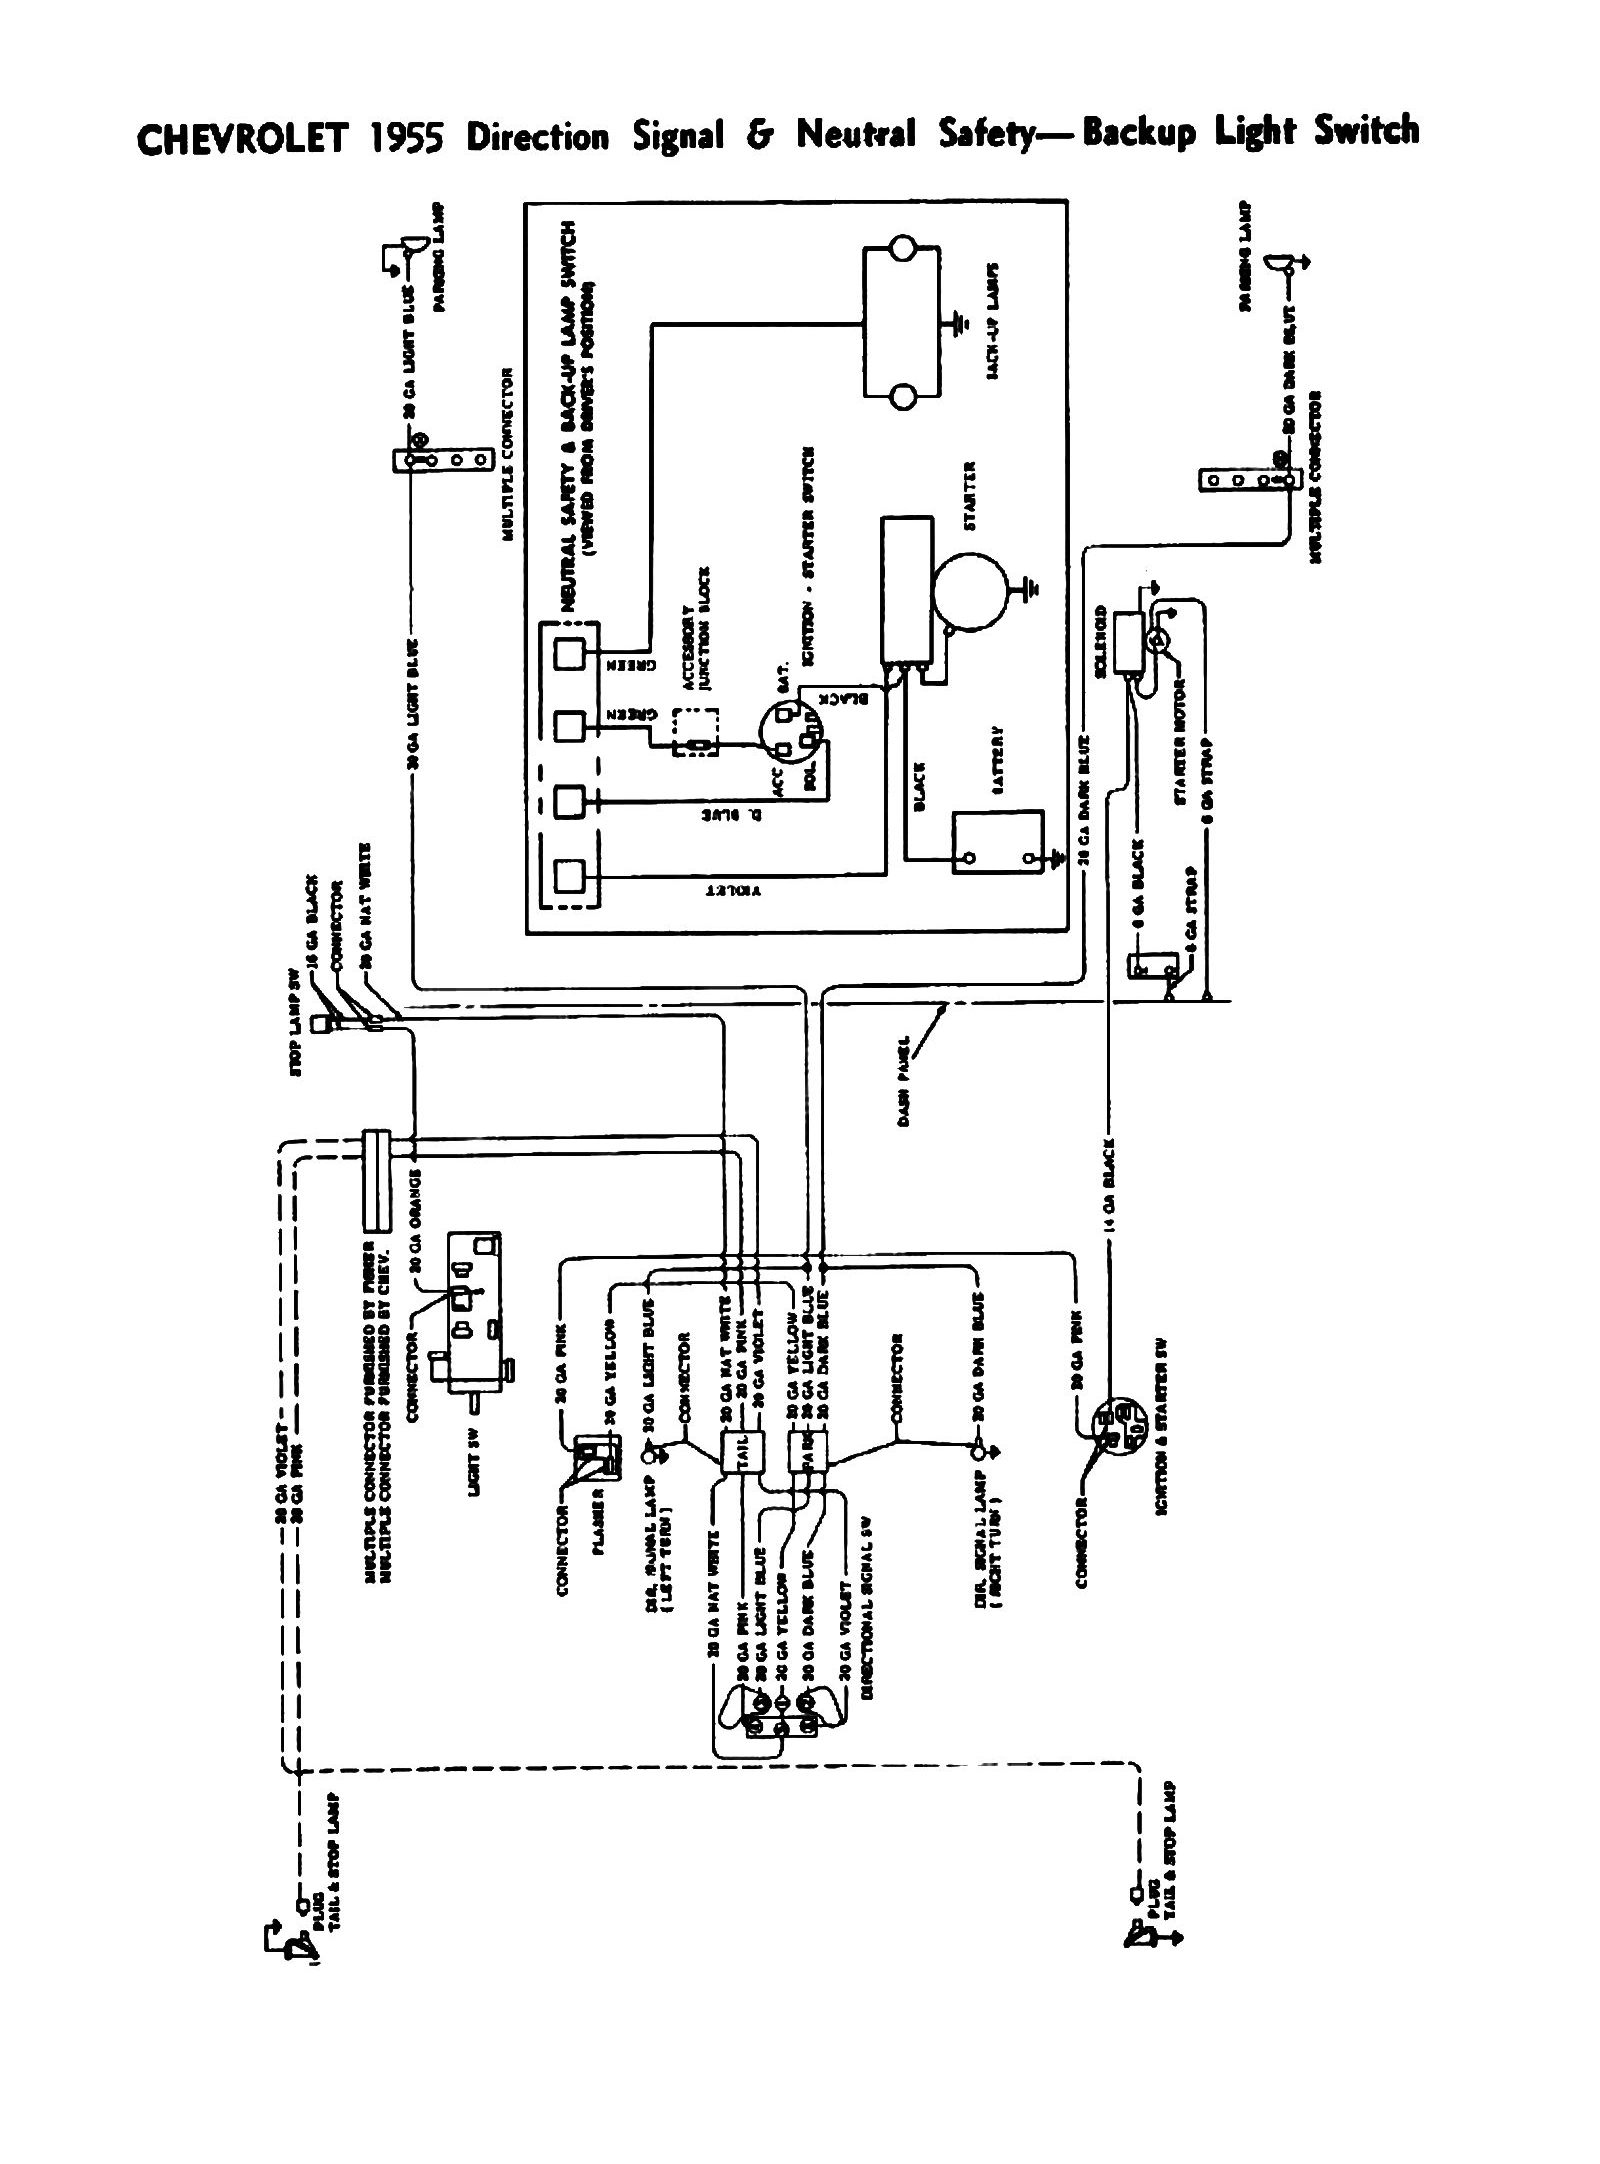 wiring diagrams chevy silverado the wiring diagram chevy wiring diagrams wiring diagram